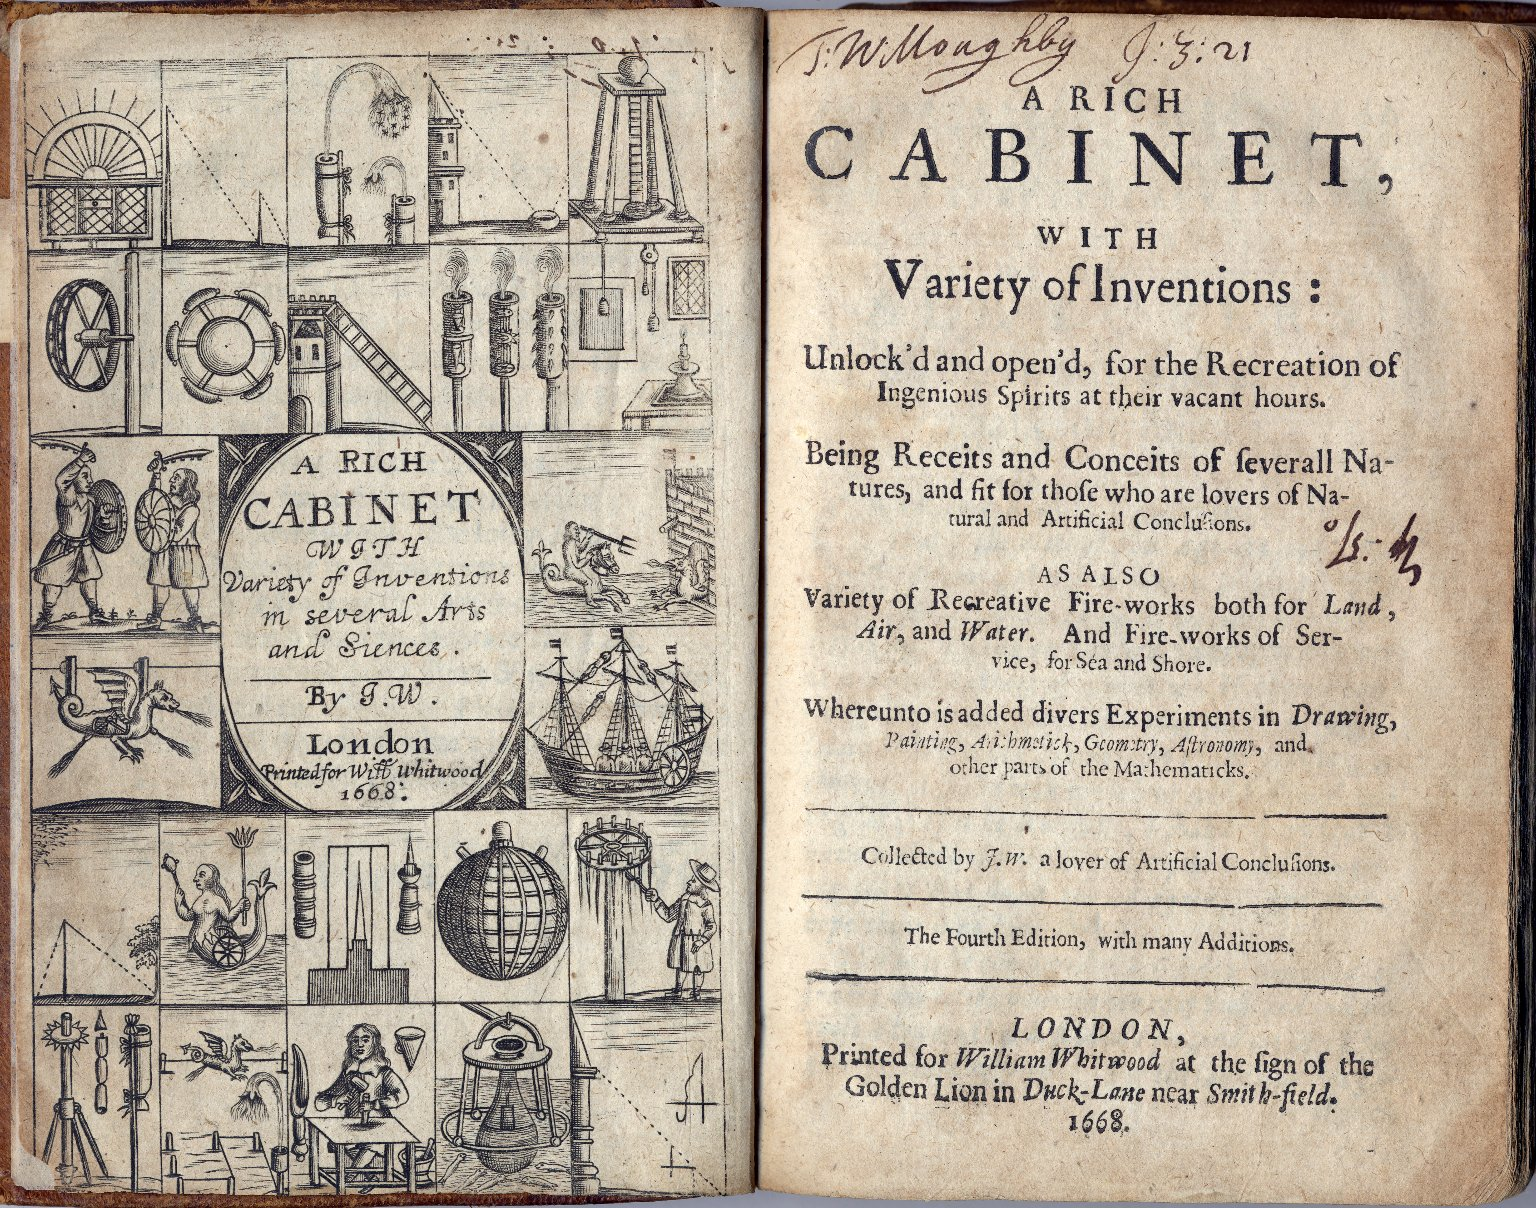 A rich cabinet, with variety of inventions: unlock'd and open'd, for the recreation of ingenious spirits at their vacant hours.